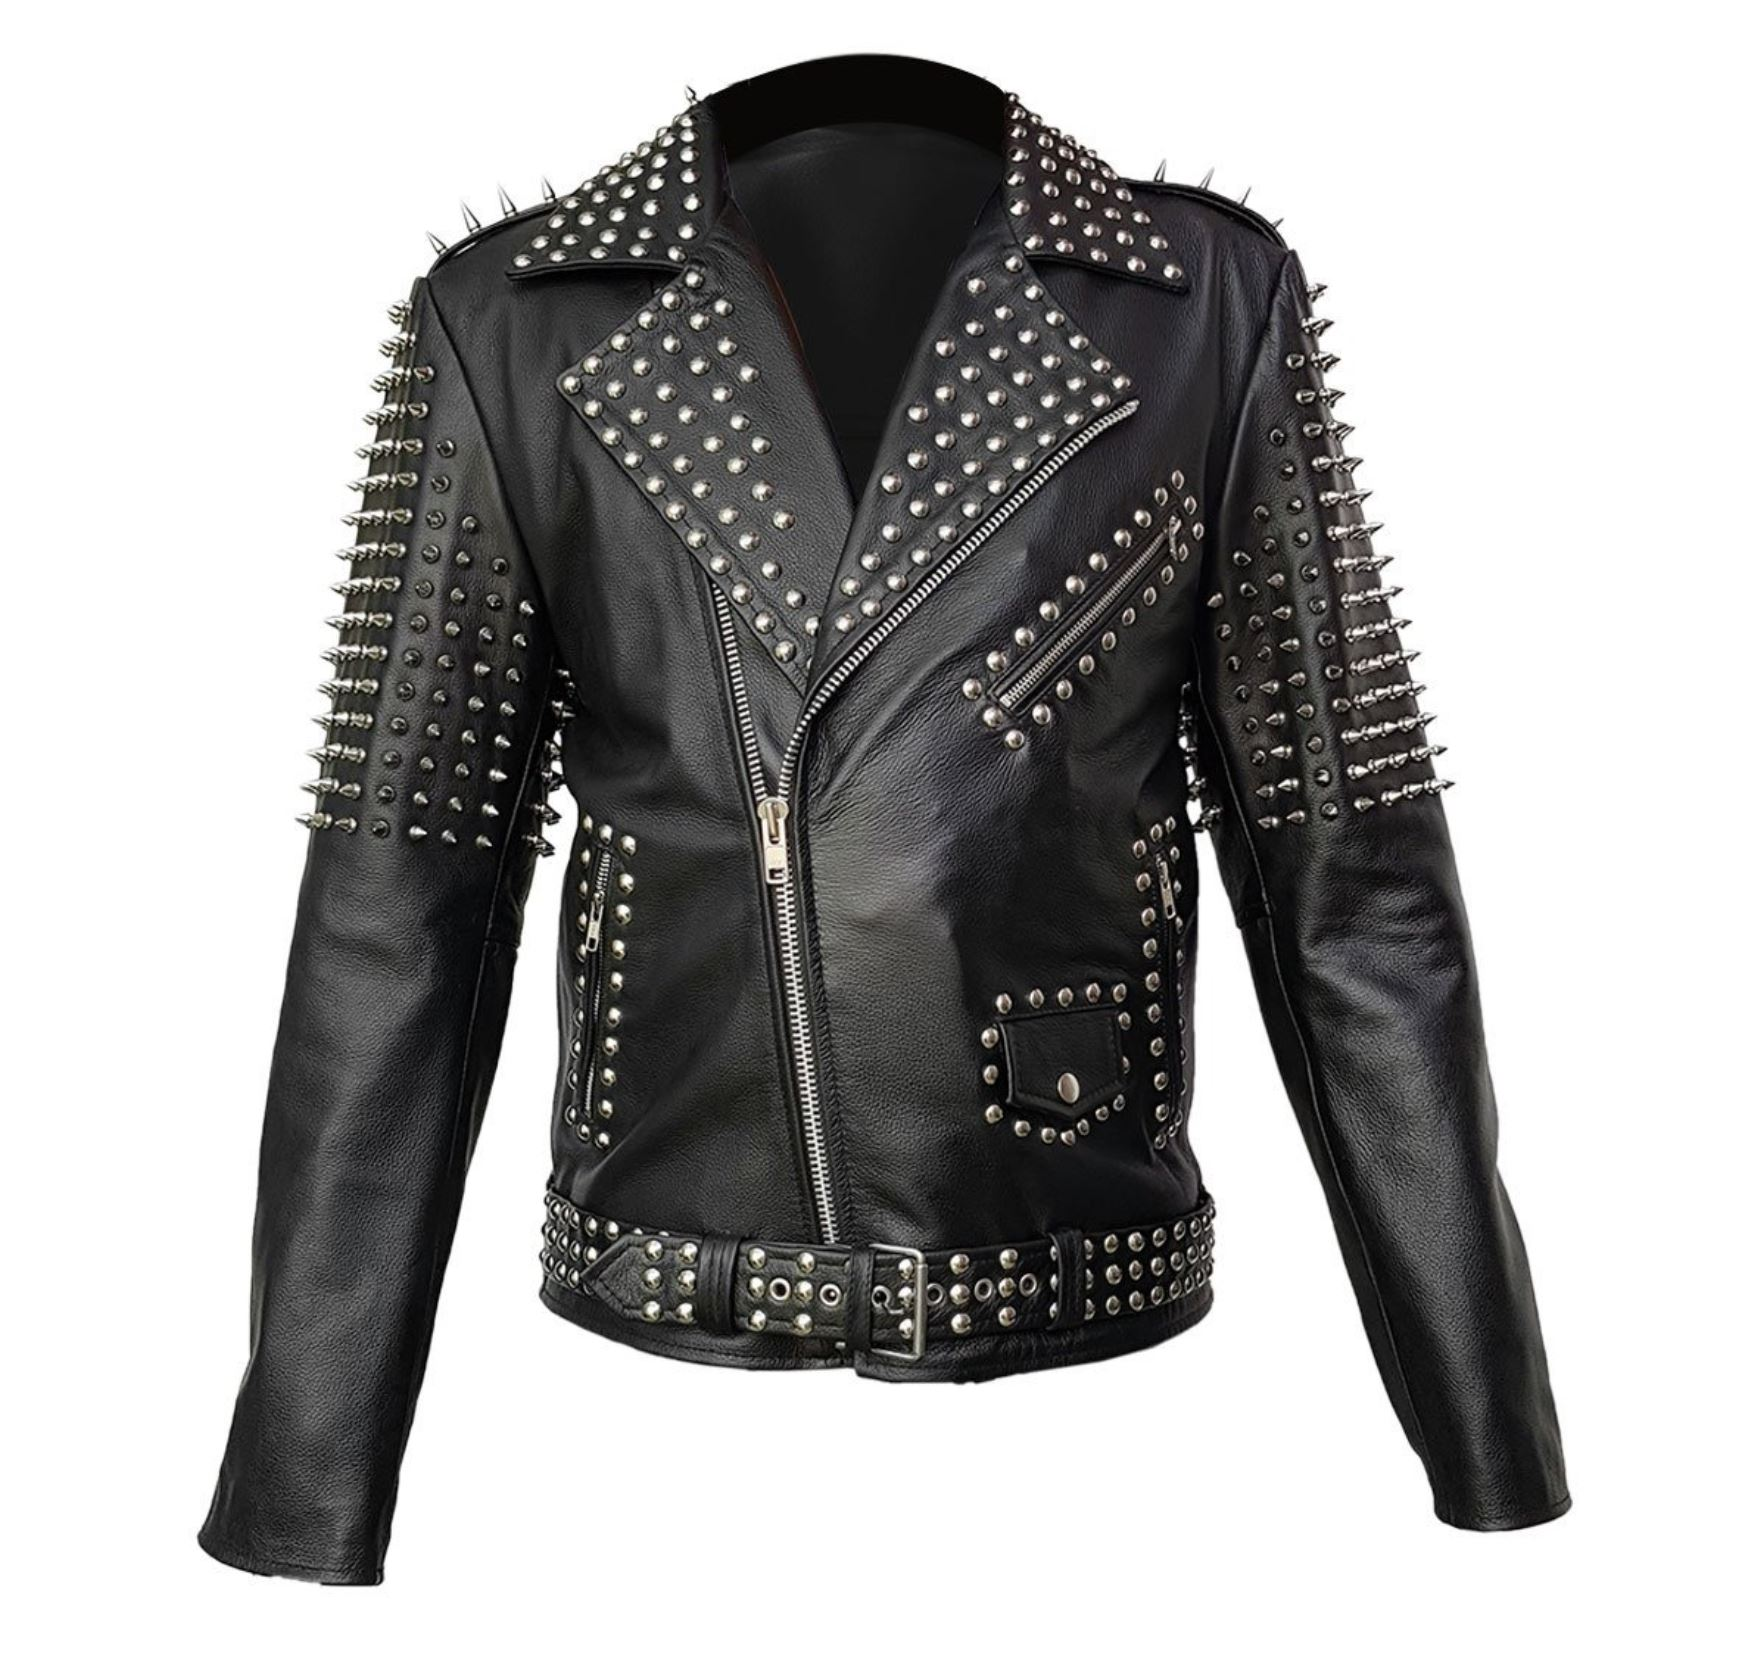 Studded Leather Biker Jacket from amazon.com